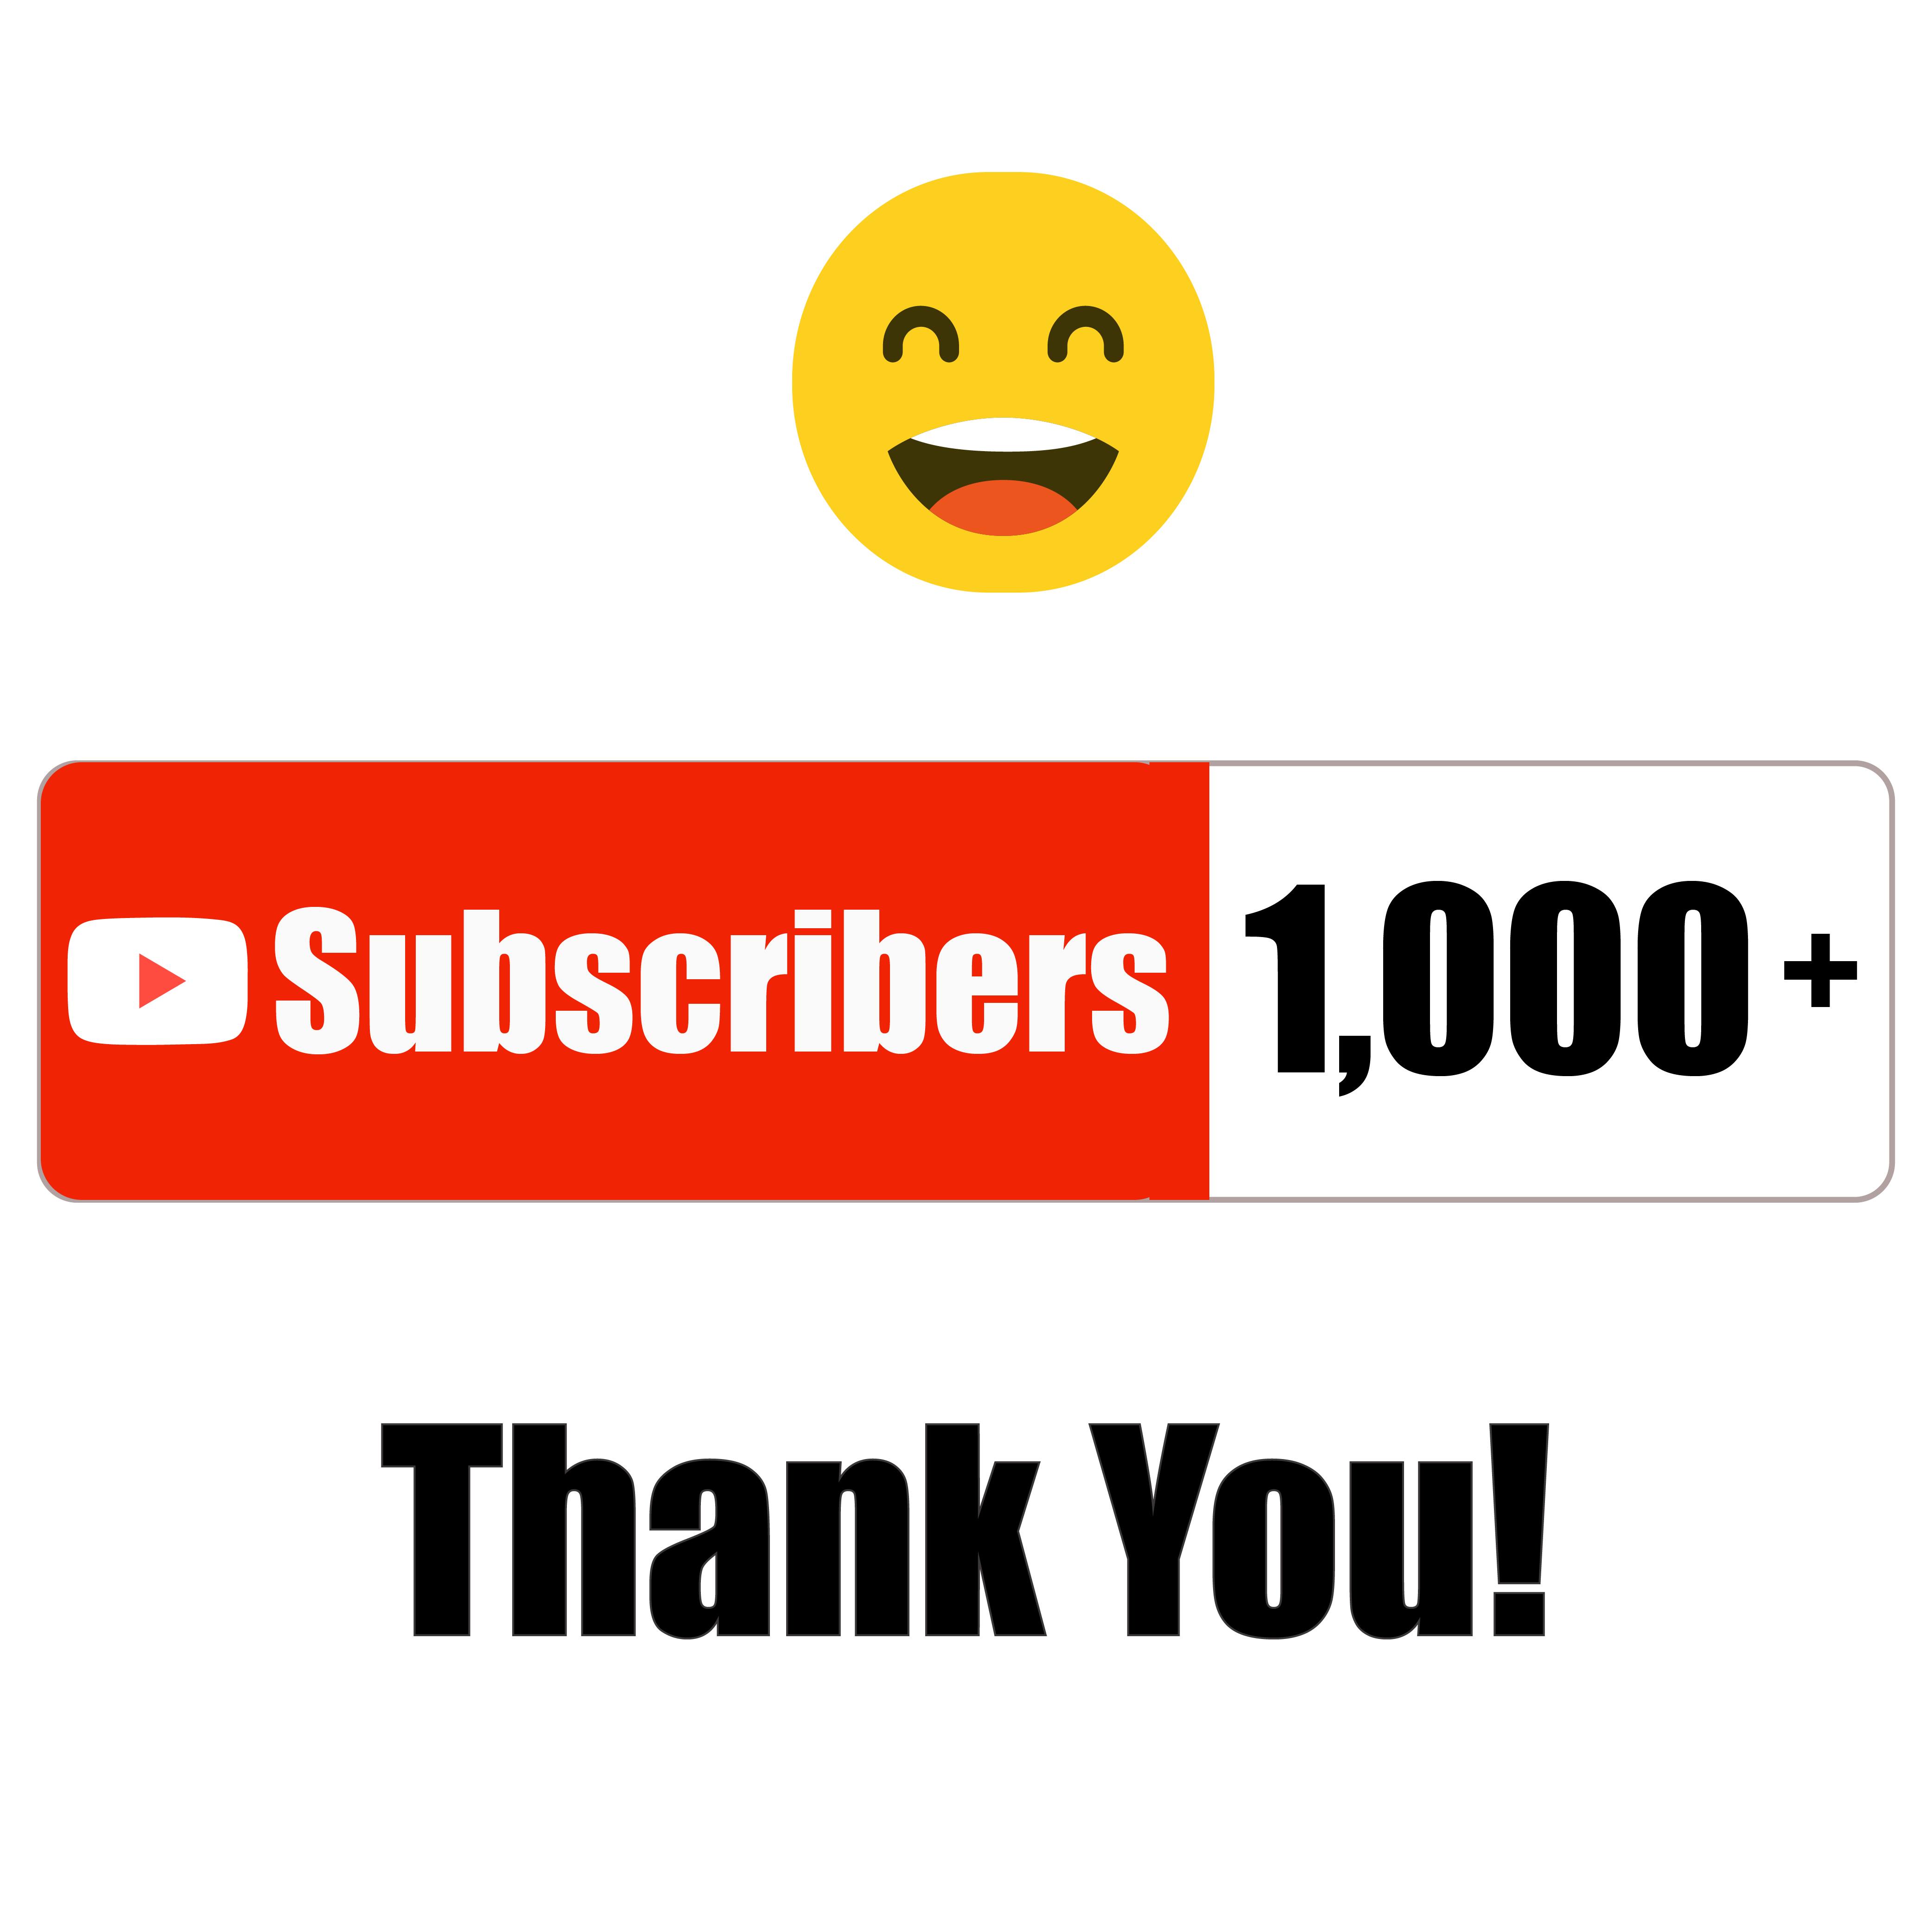 Our YouTube channel crossed over 1k subscribers! 😃 Many